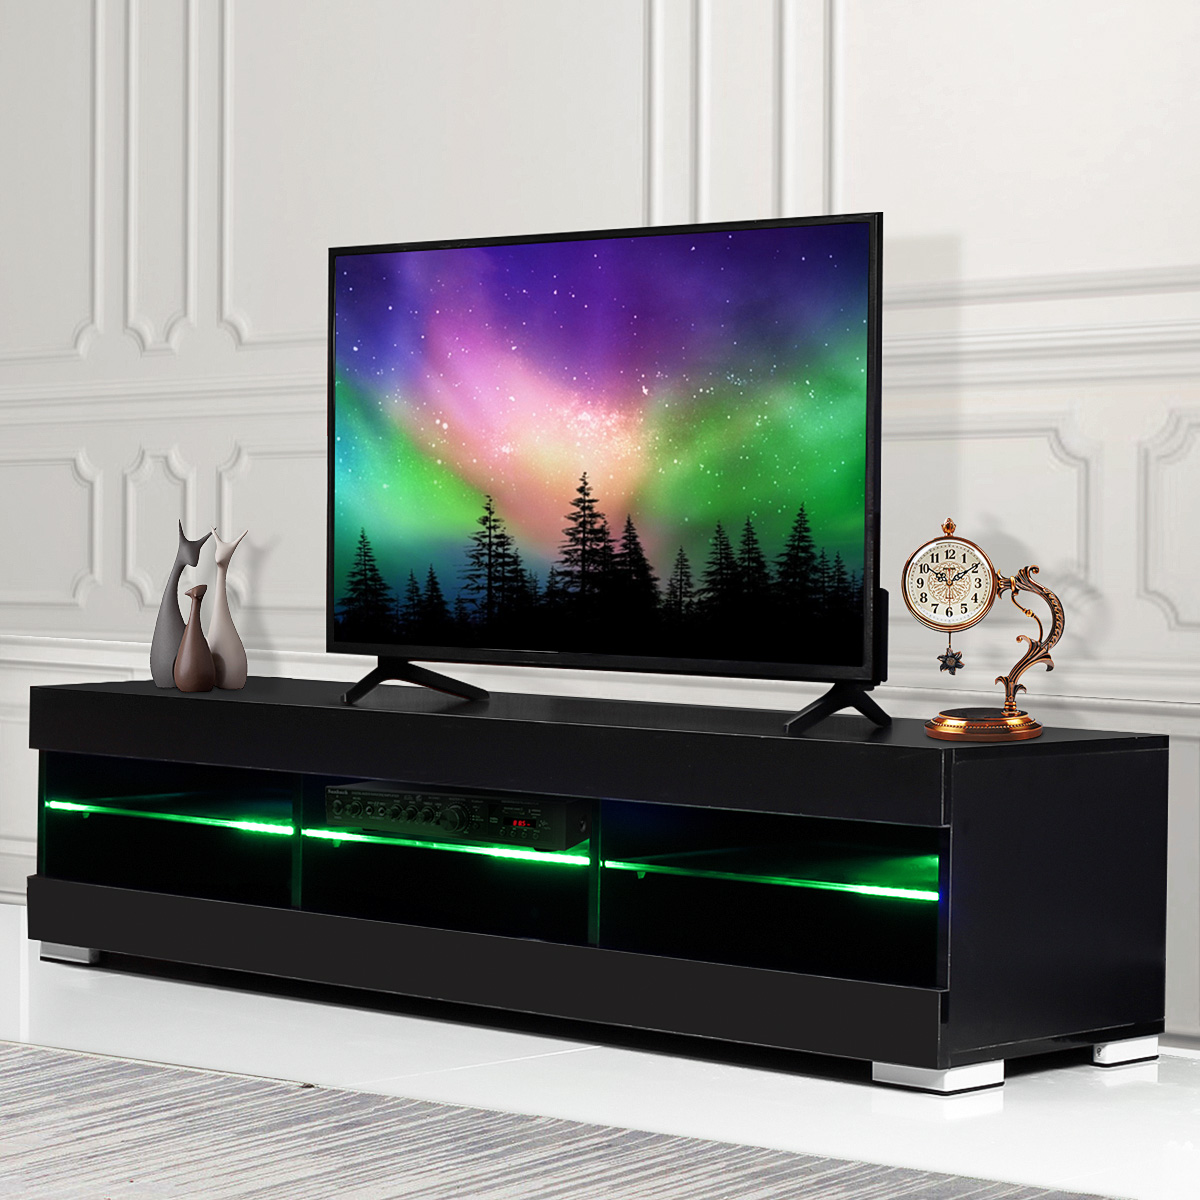 57 Tv Cabinet Modern Led Tv Stands Living Room Furniture Detachable Tv Unit Bracket With 6 Open Drawers Home Furnishings Tv Stands Aliexpress